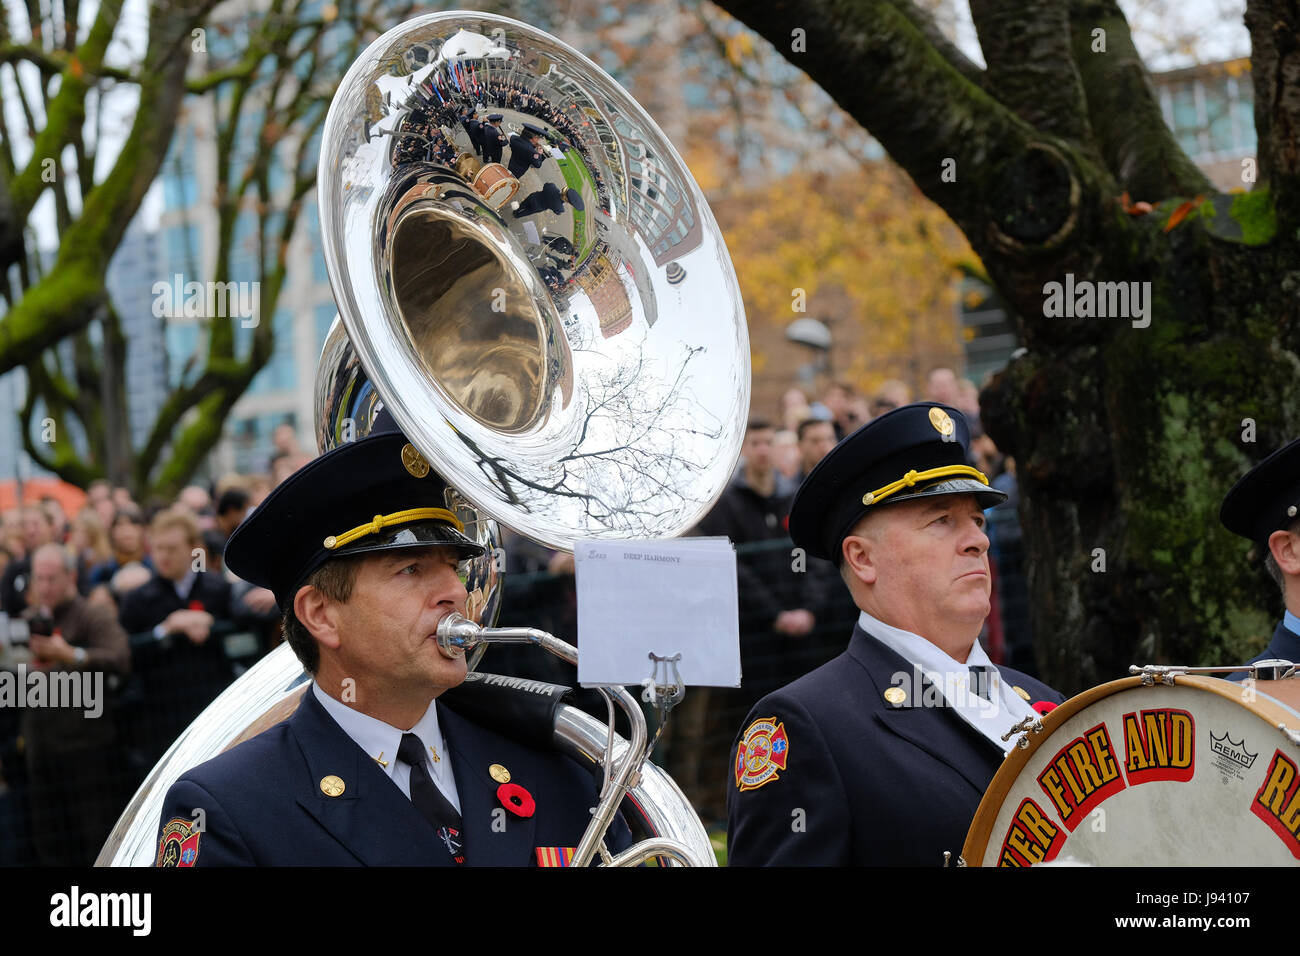 11th November, 2016. The Vancouver Fire and Rescue Services Band performs during the Annual Remembrance Day ceremony - Stock Image